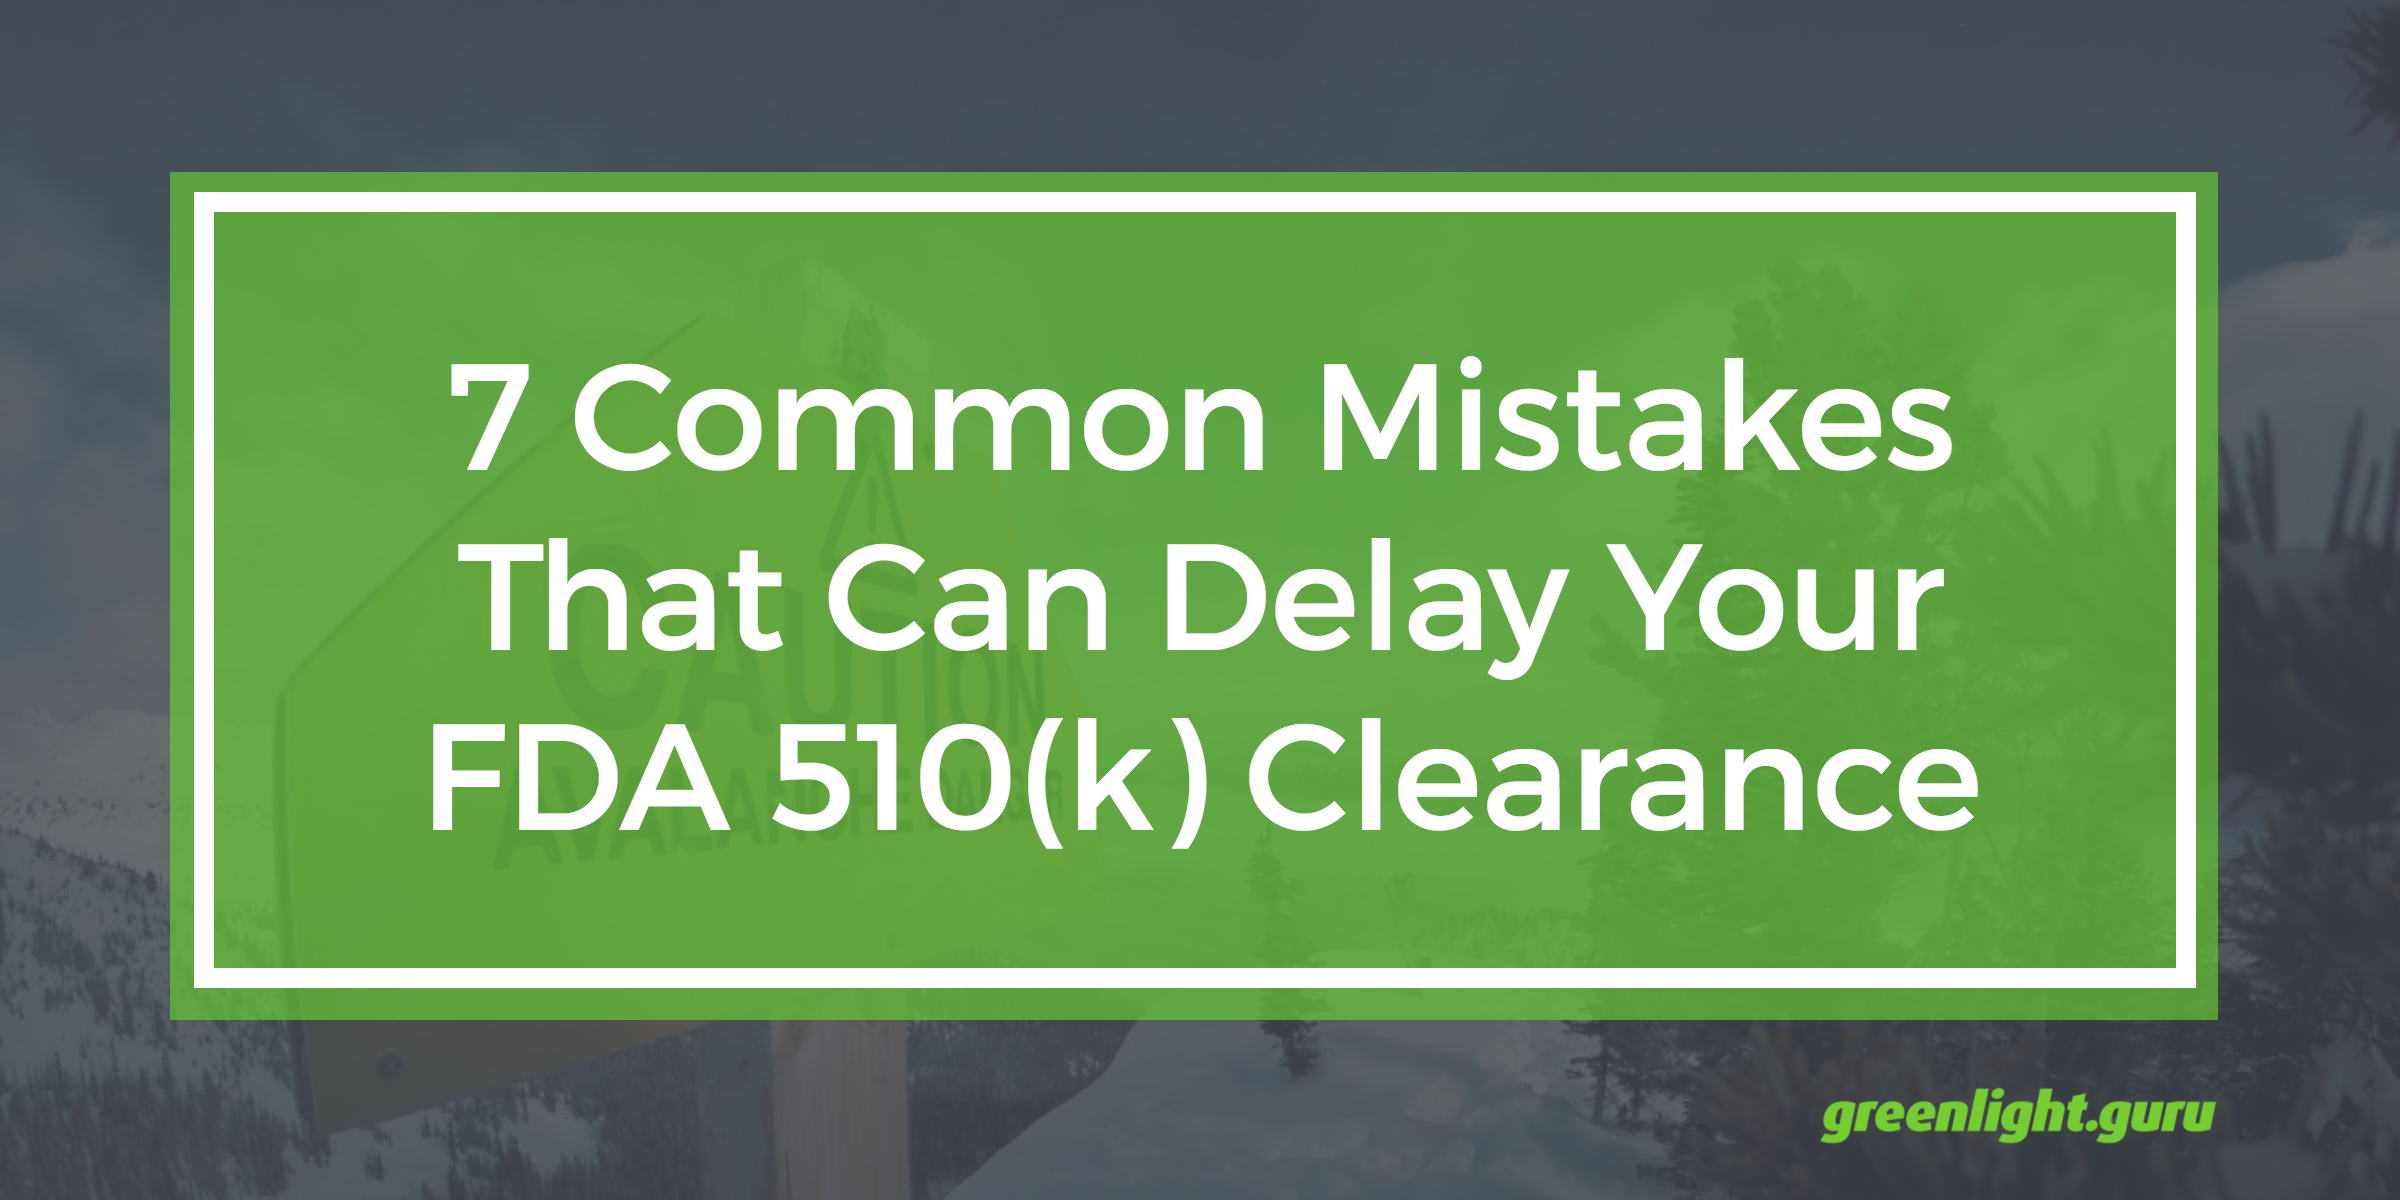 7 Common Mistakes That Can Delay Your FDA 510(k) Clearance - Featured Image